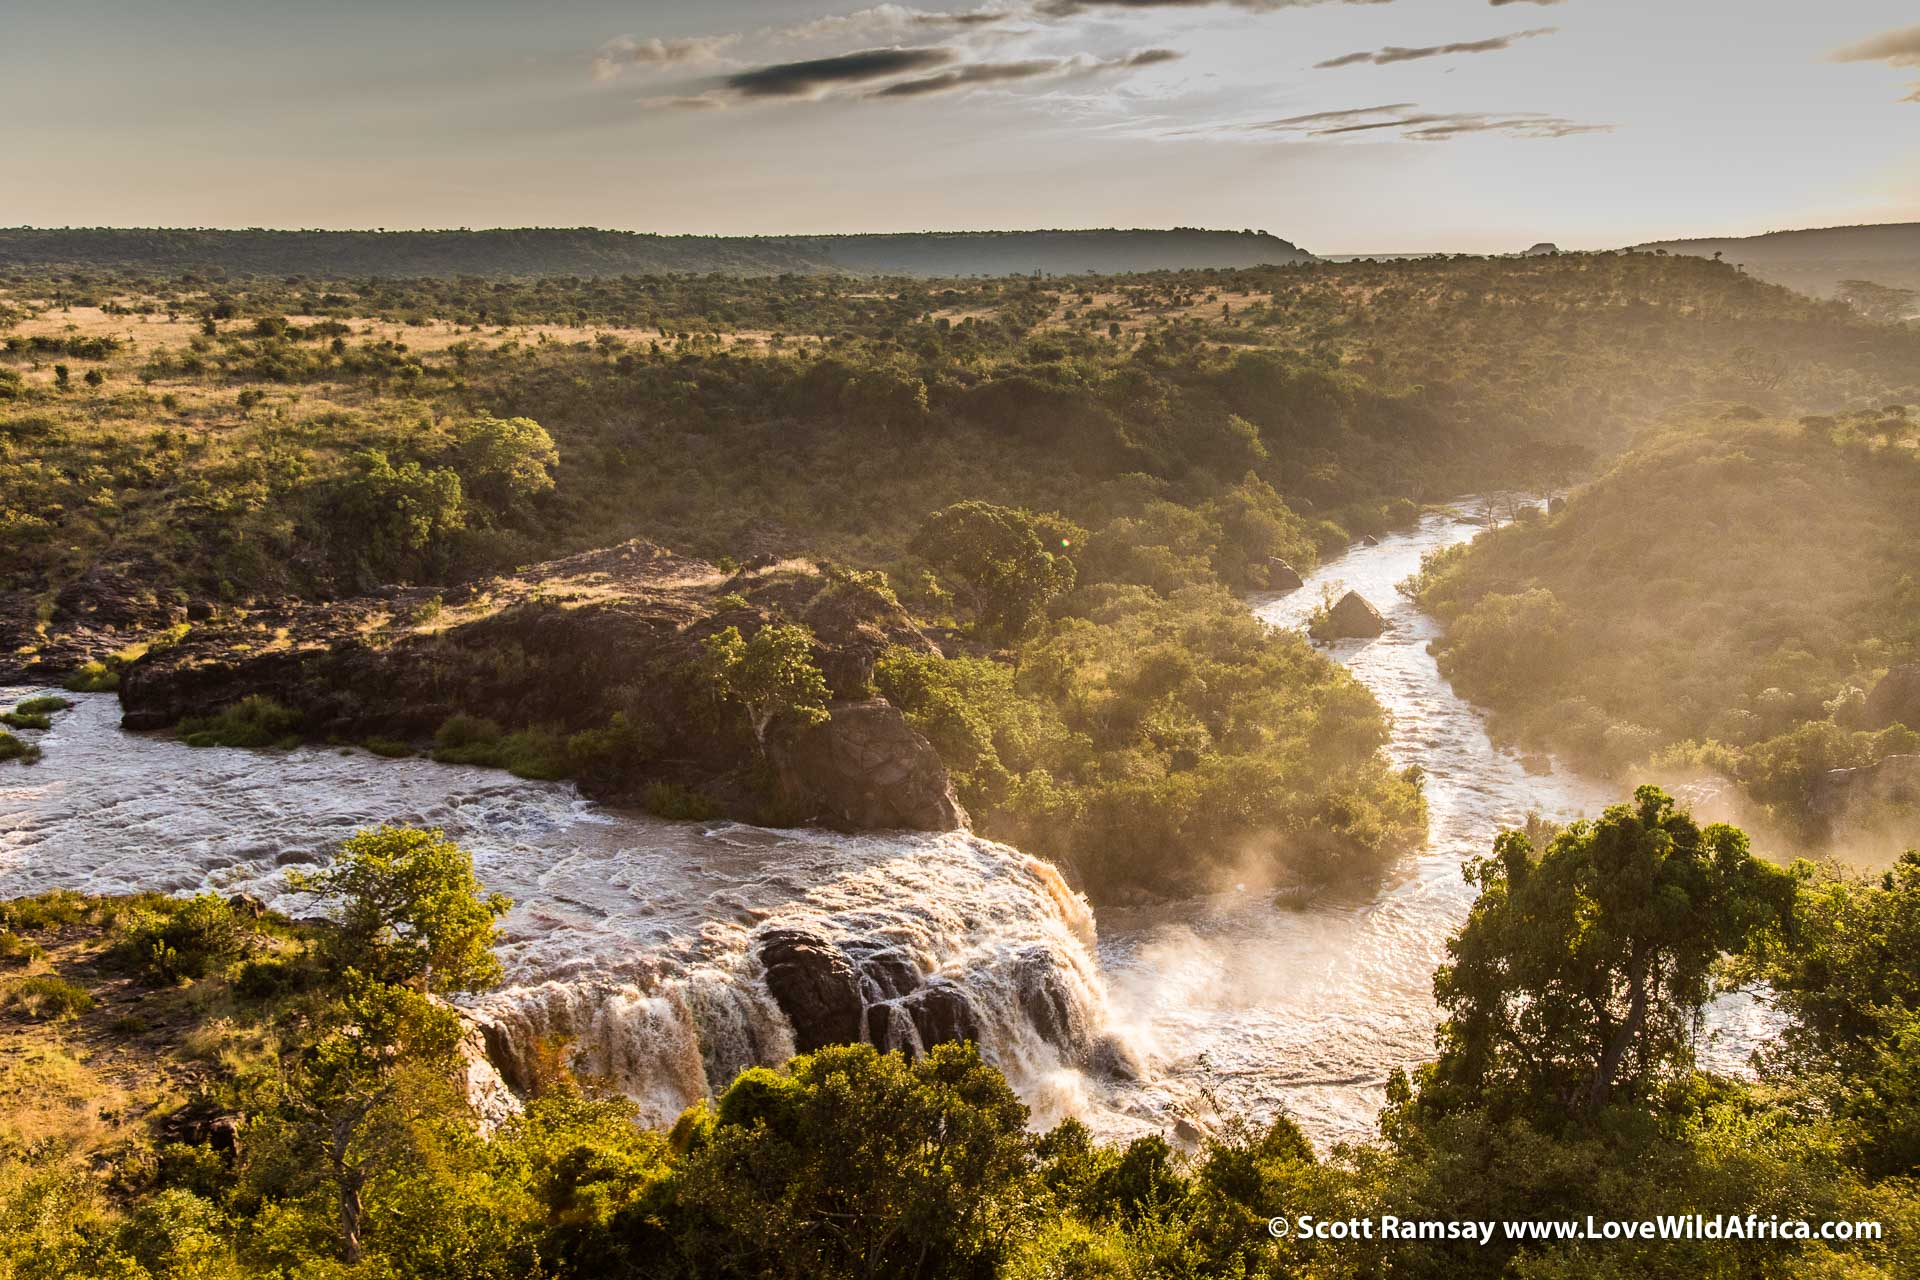 The Ewaso Ngiro river cuts through dramatic landscape in this part of Laikipia